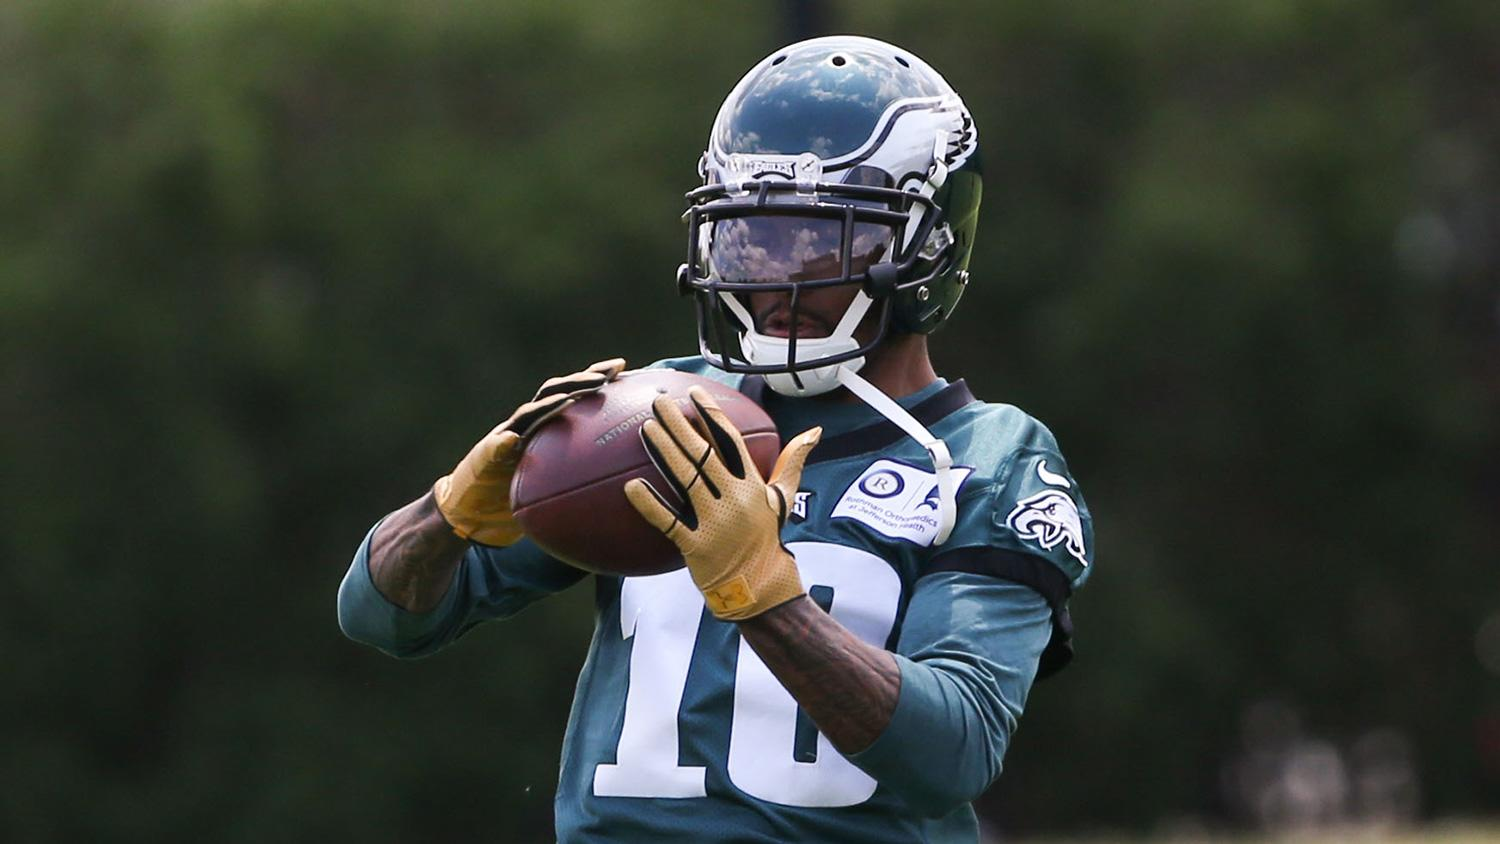 How important will deep threat DeSean Jackson be for Eagles in 2019 season?